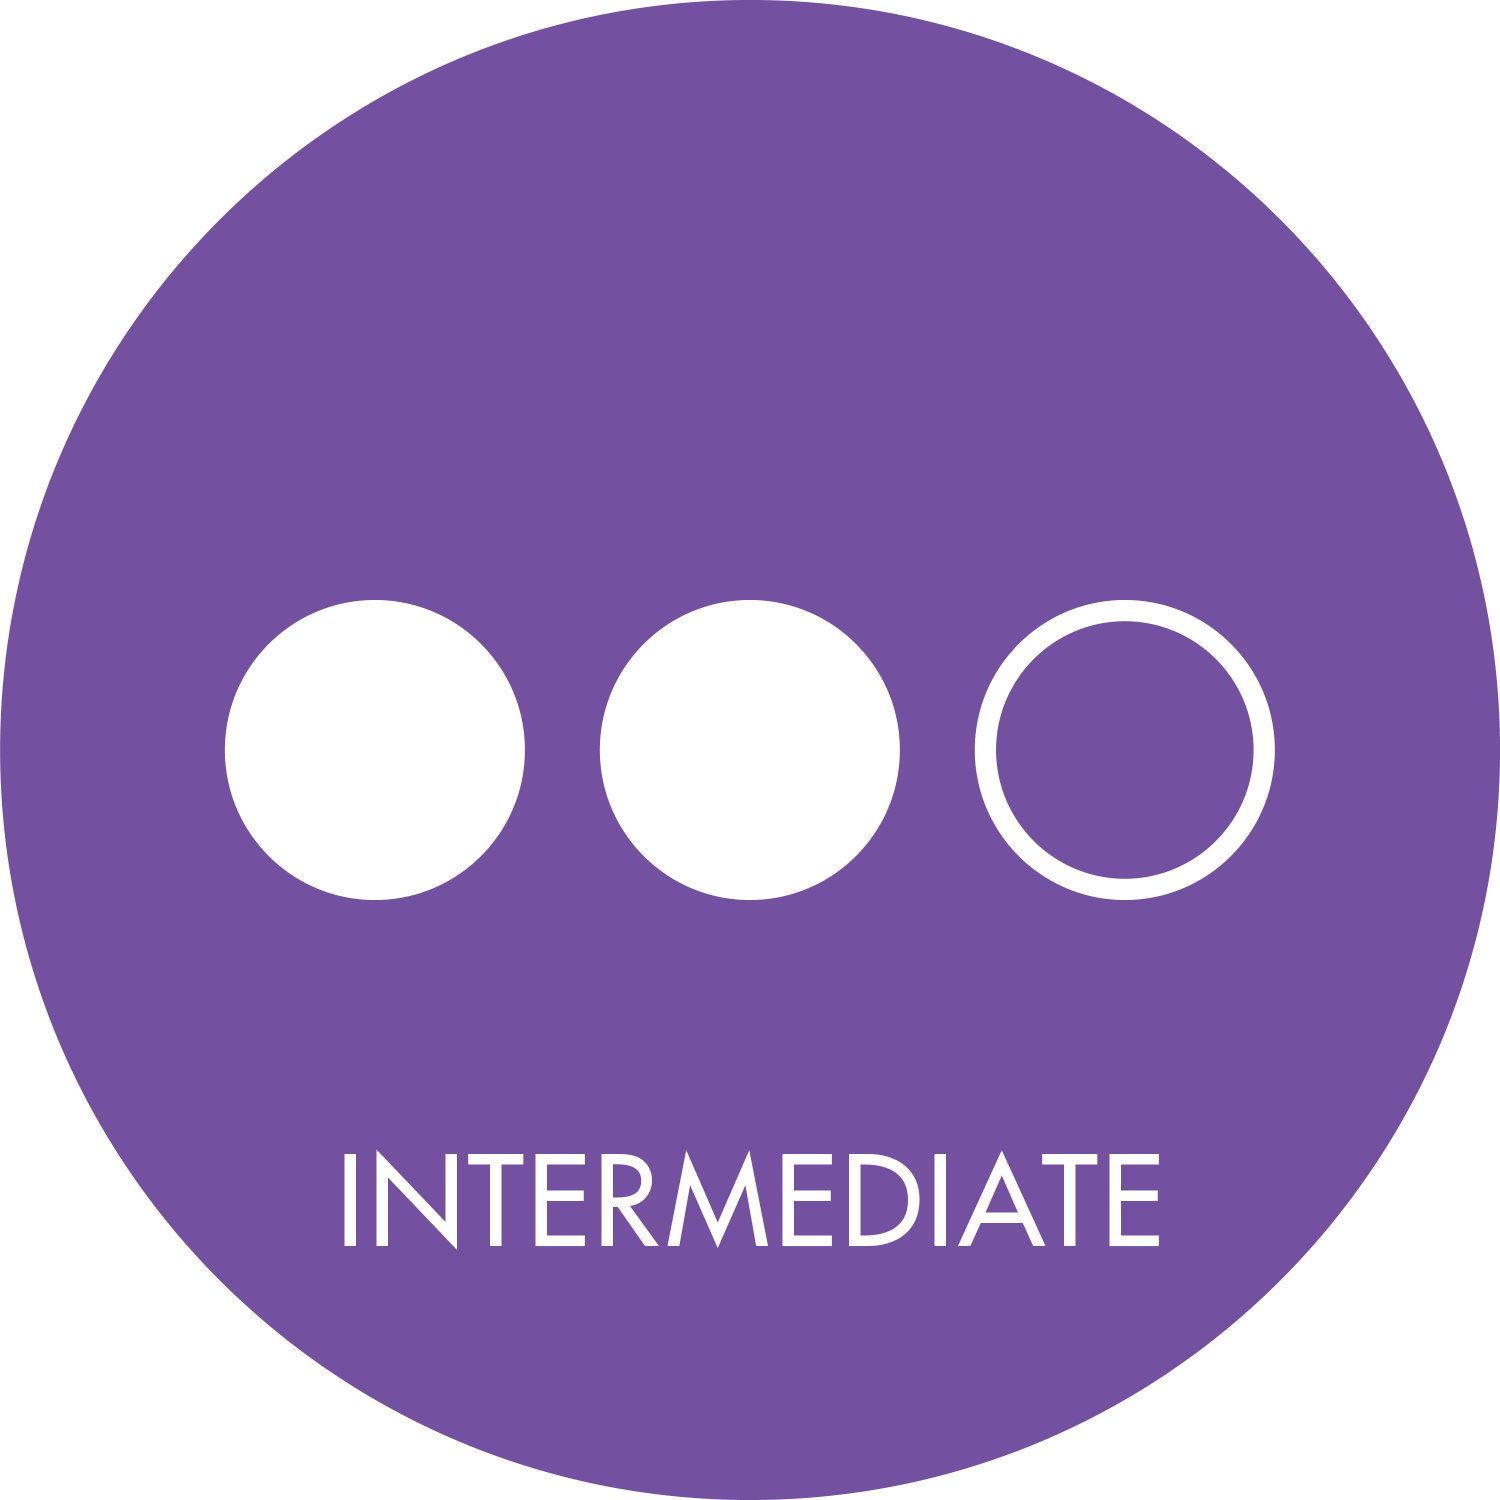 Circle_Icon_Text_Level_Intermediate.png